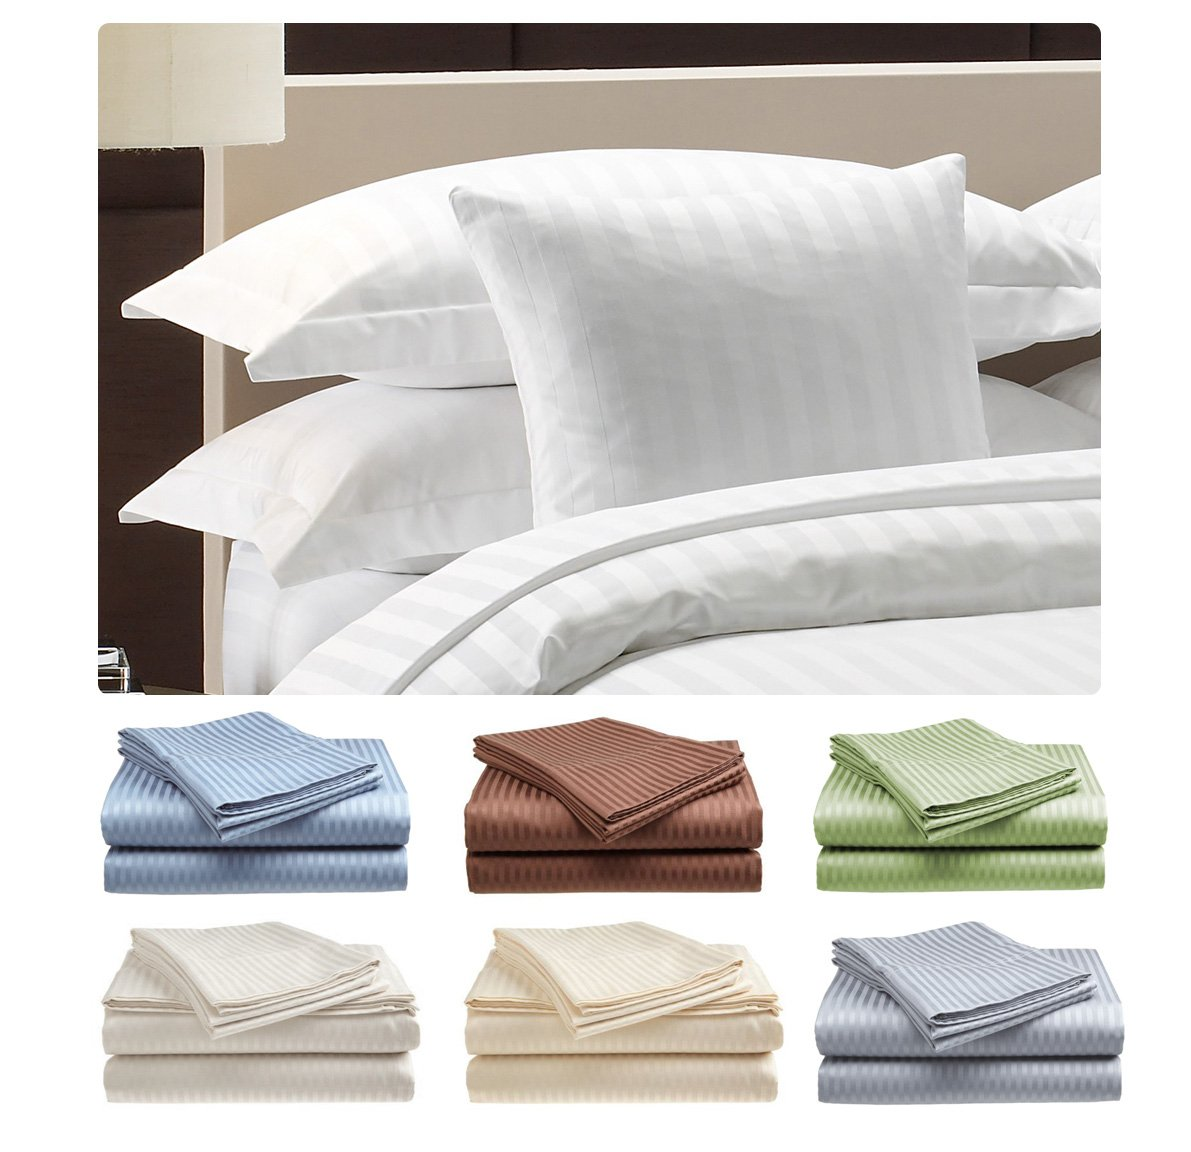 King Size 400 Thread Count 100% Cotton Sateen Dobby Stripe Sheet Set -Silver olympic queen size 600 thread count 100